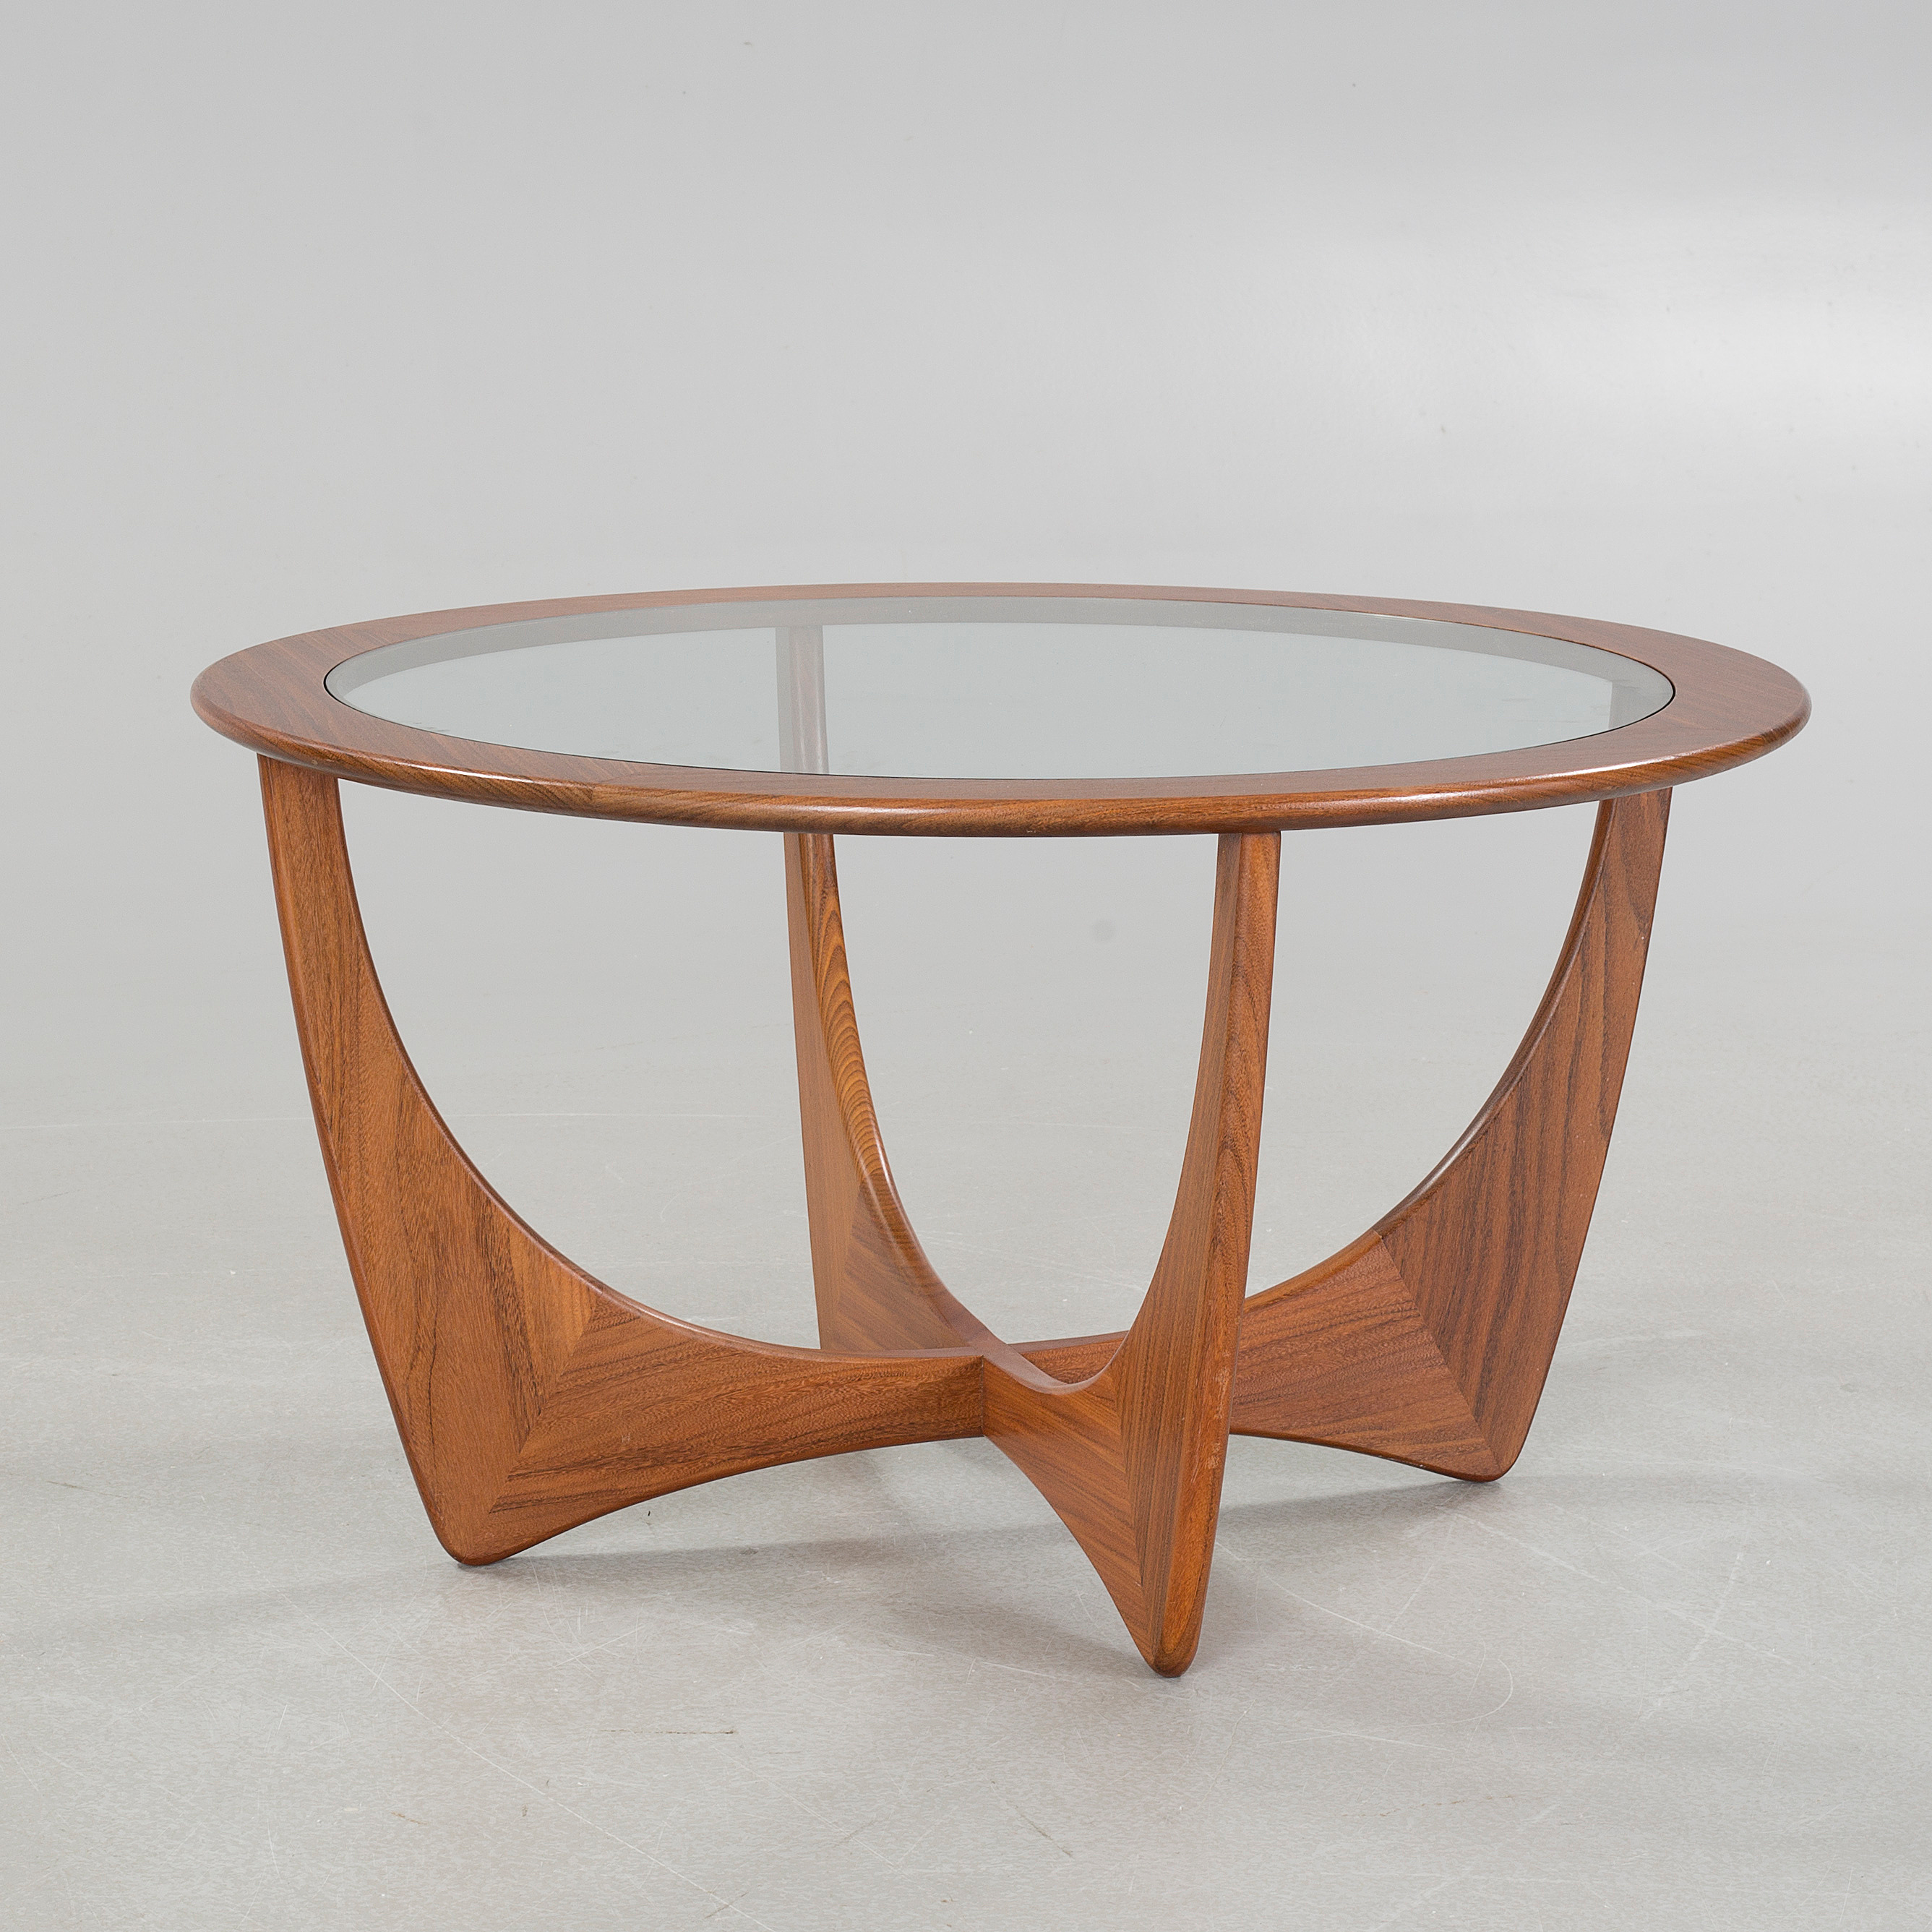 Astro Coffee Table.A Coffee Table From G Plan In England Model Astro Second Half Of